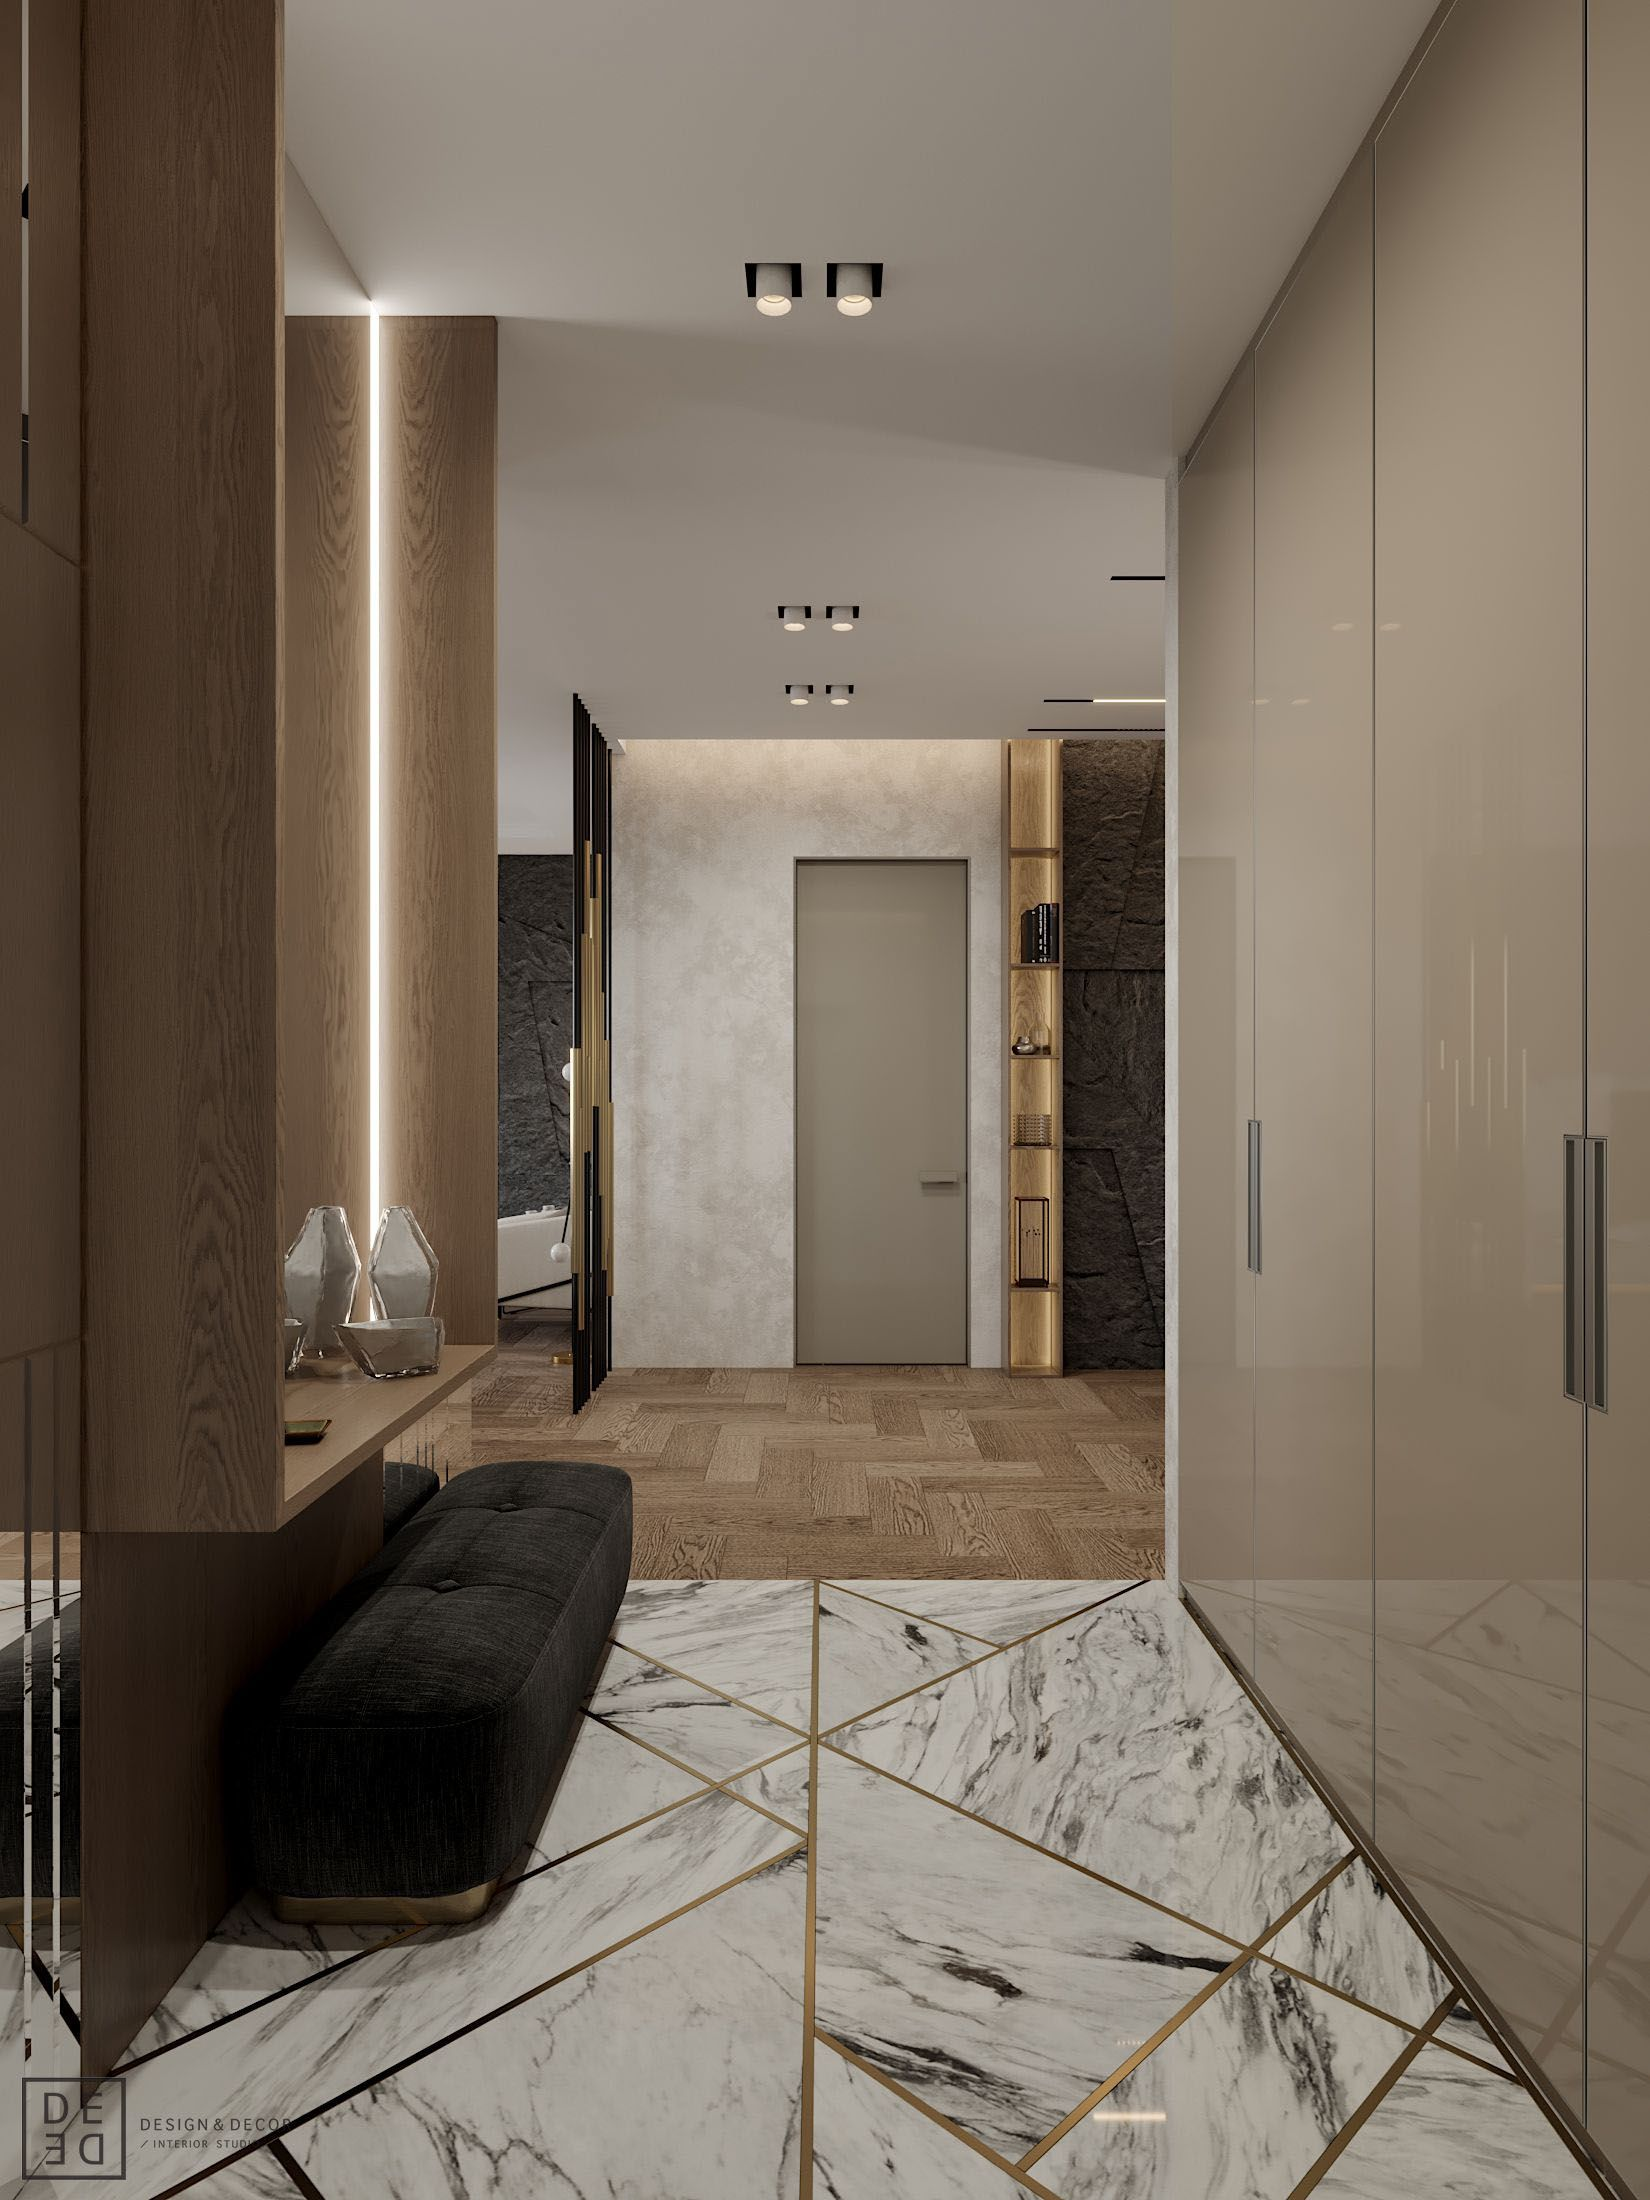 Luxury apartments are continuously reaching new heights with luxurious interiors concierge services in house spas and jacuzzis home automation much also what   inspiring me the casa decor show bathroom ideas rh pinterest